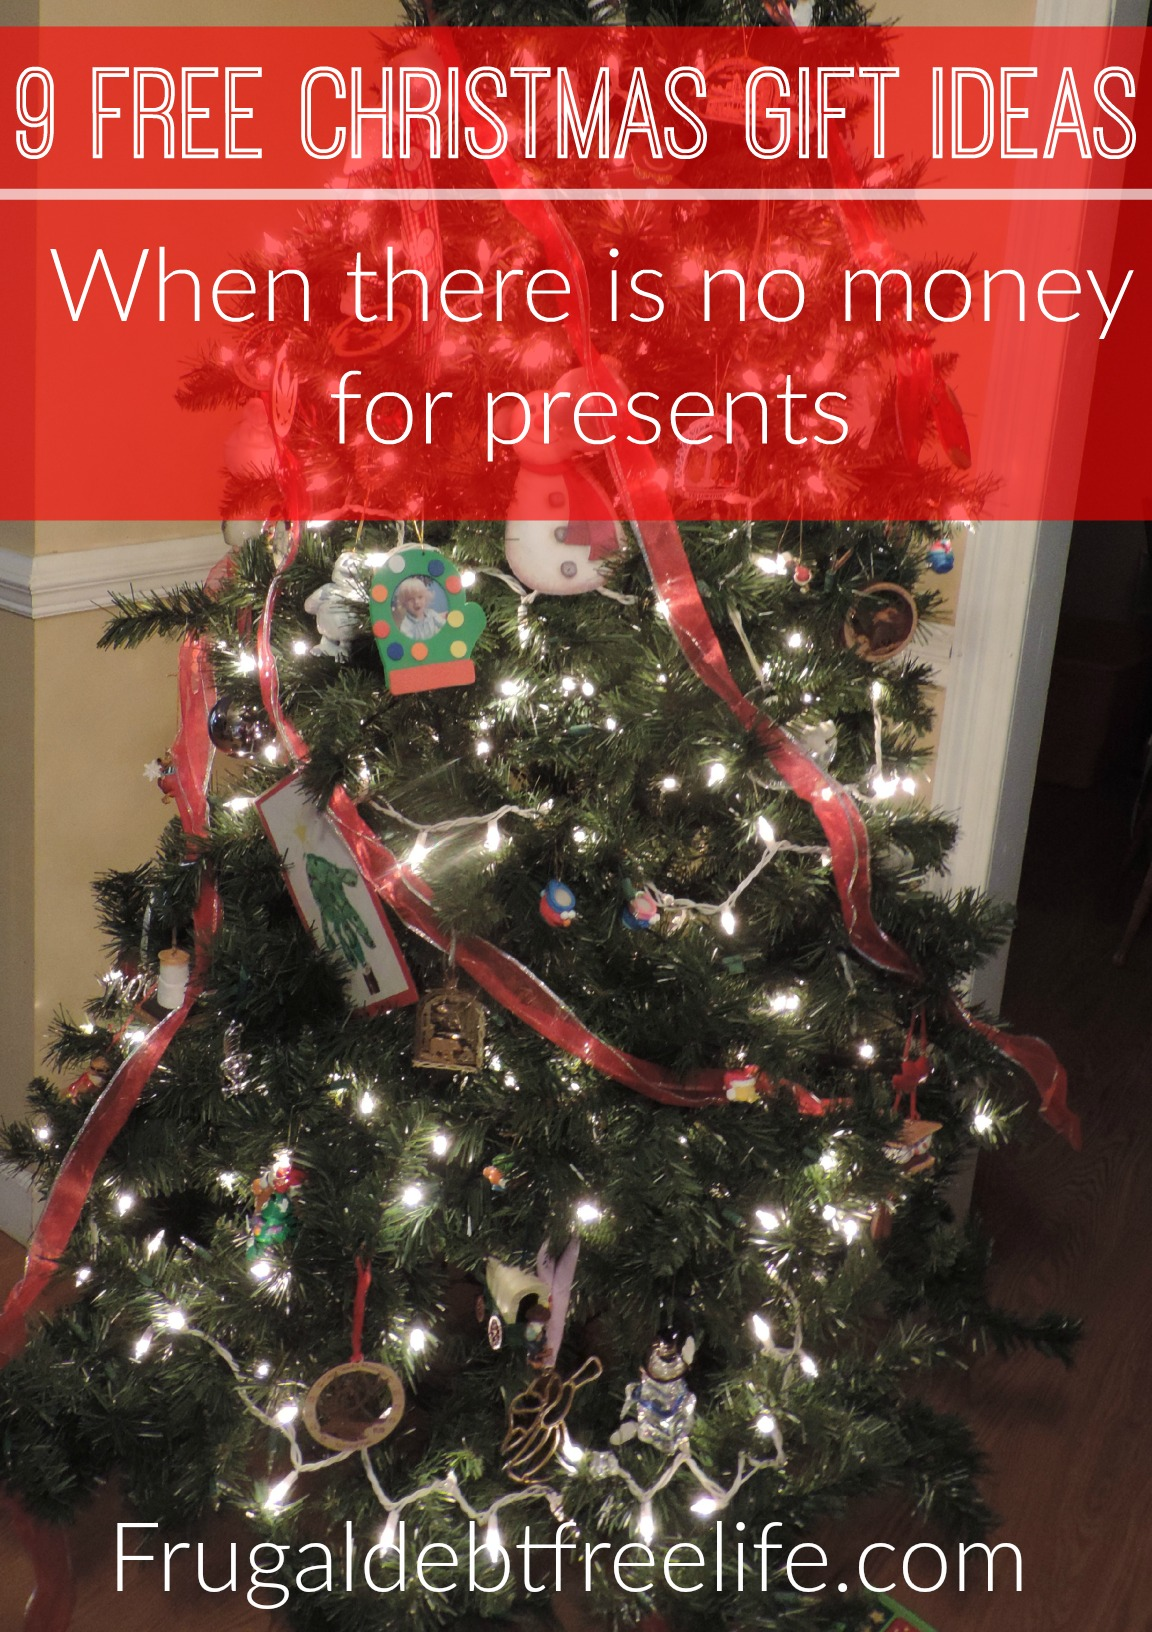 9 Christmas Gifts Ideas That Cost 0 Frugal Debt Free Life